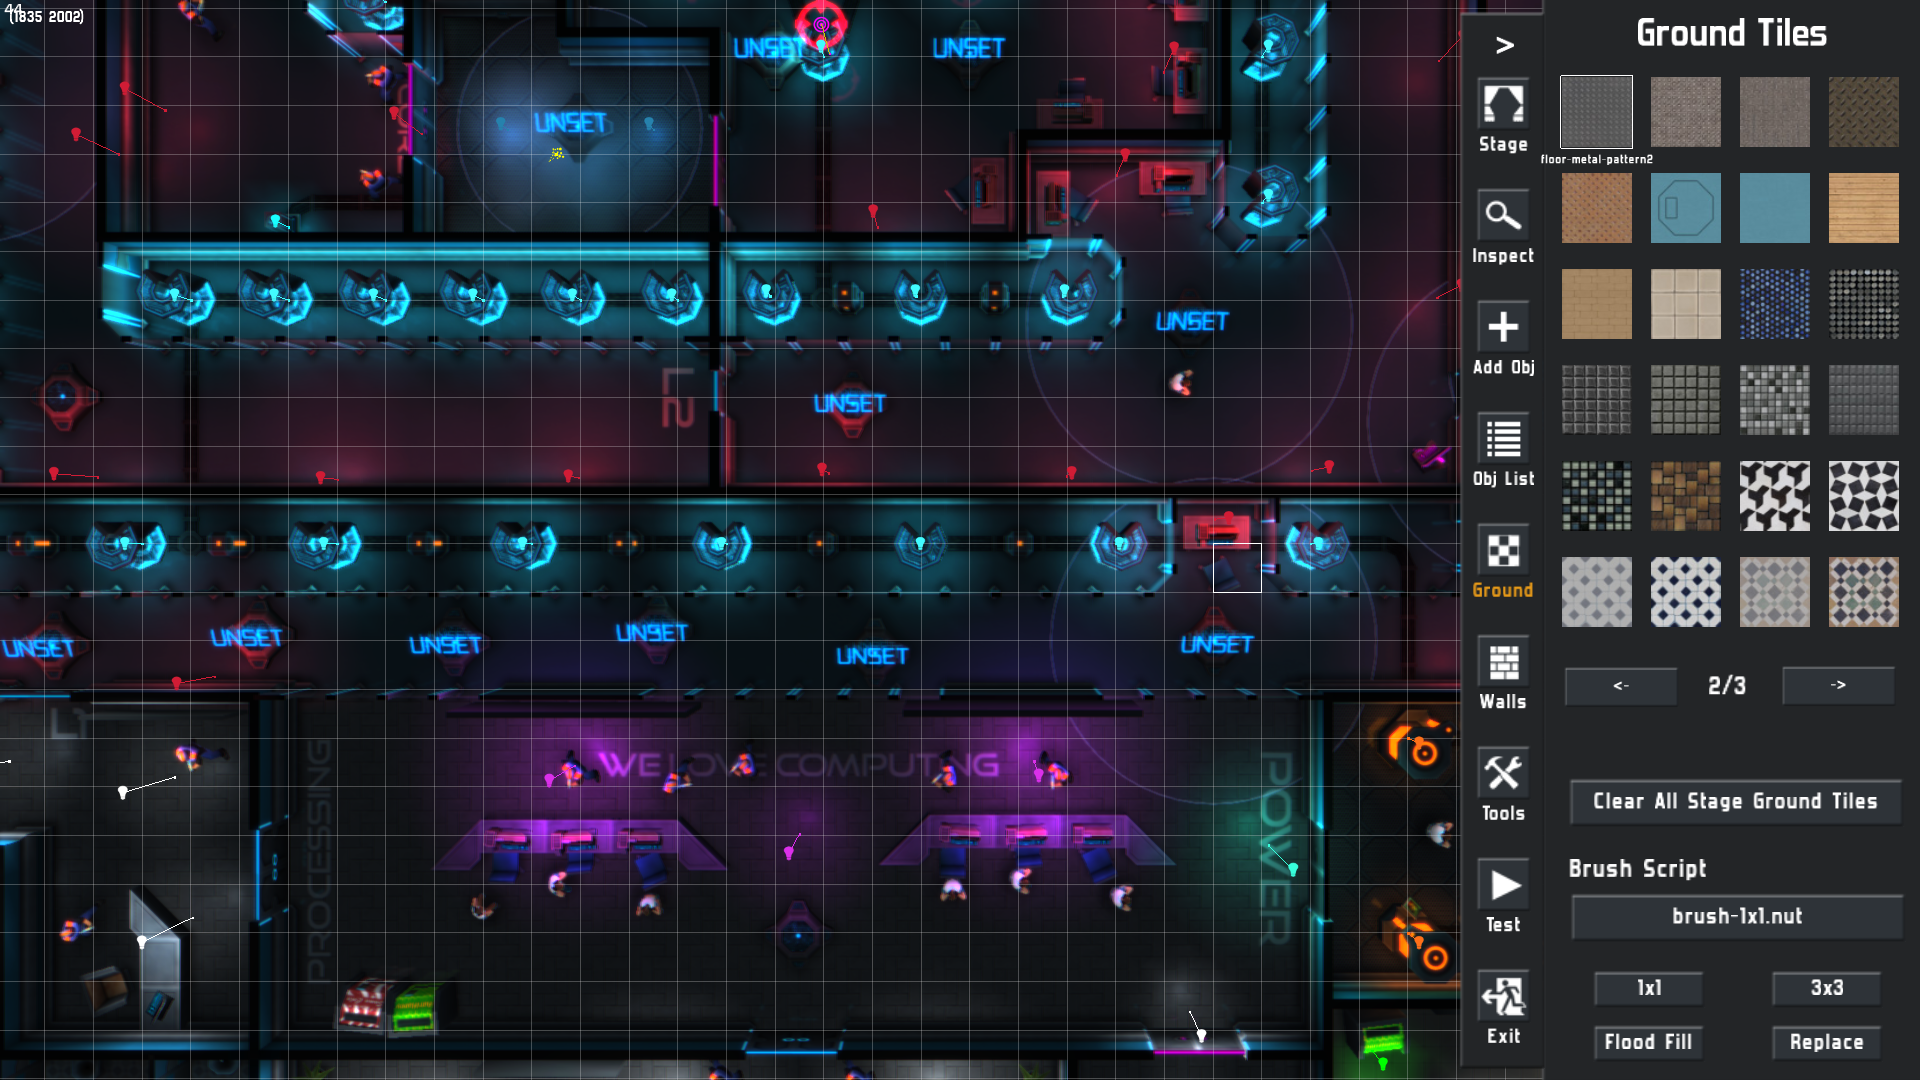 neonchrome level editor